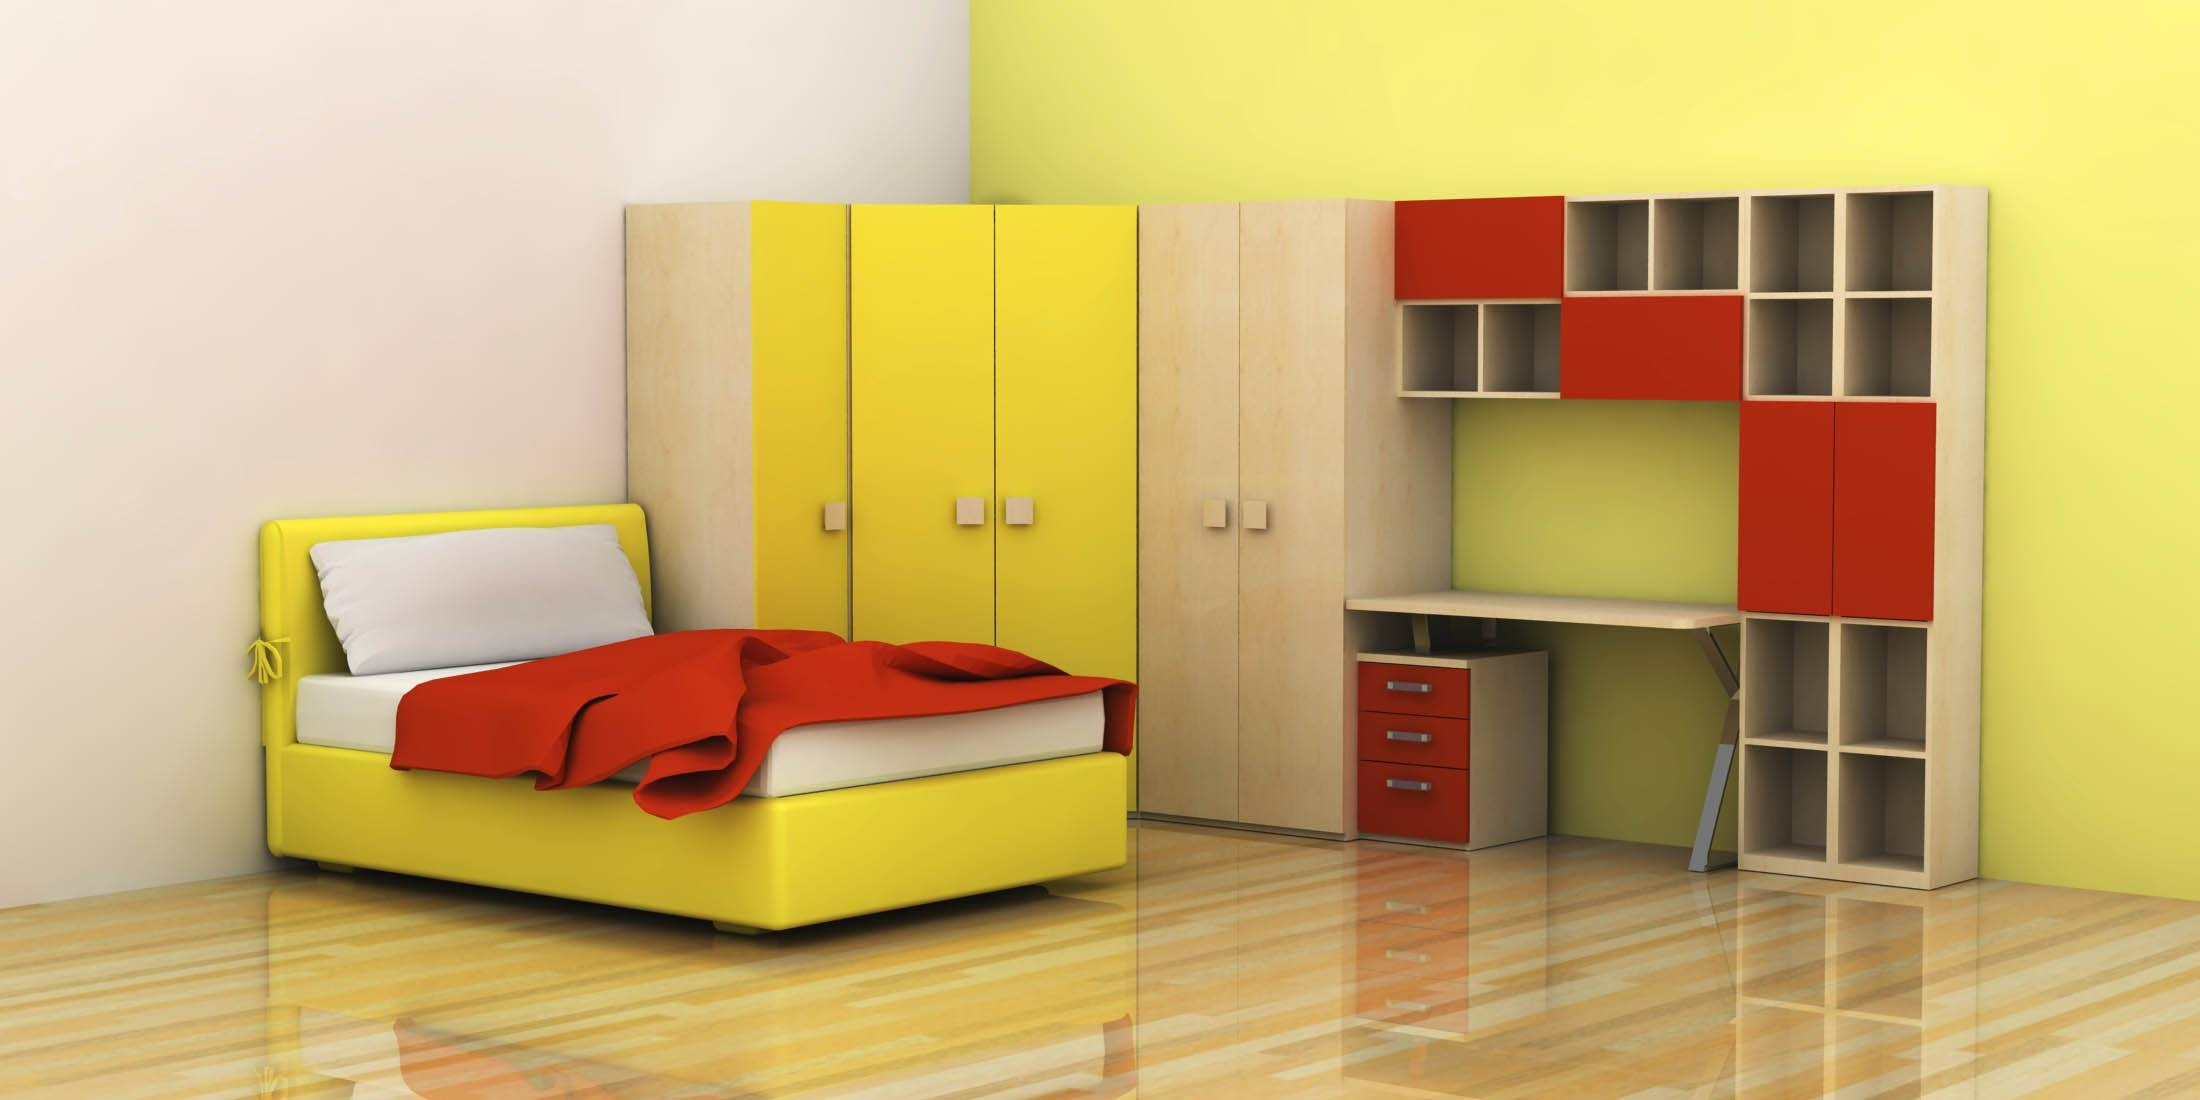 Bedroom: Colorful Furniture With Orange Domination With High within Childrens Wardrobes With Drawers And Shelves (Image 3 of 30)